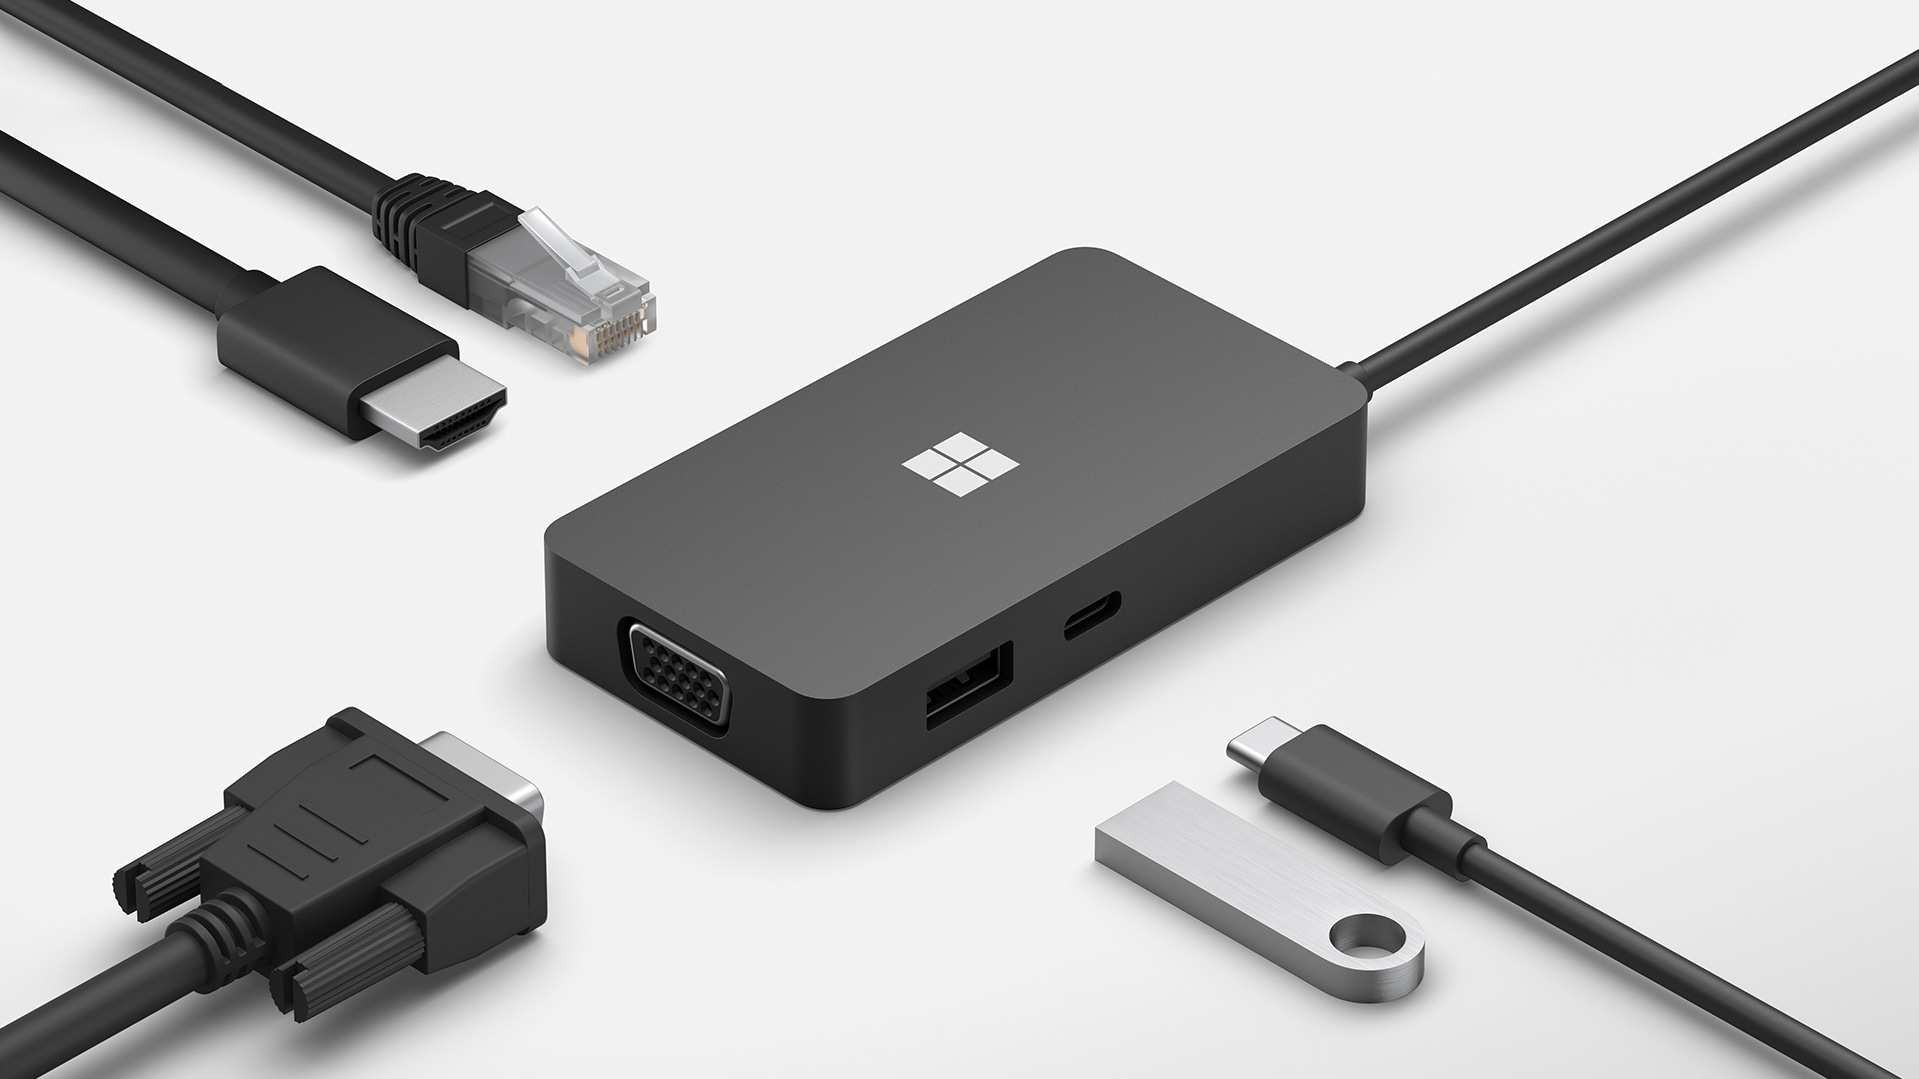 Microsoft Surface 127W Power Supply for Business  and various cables